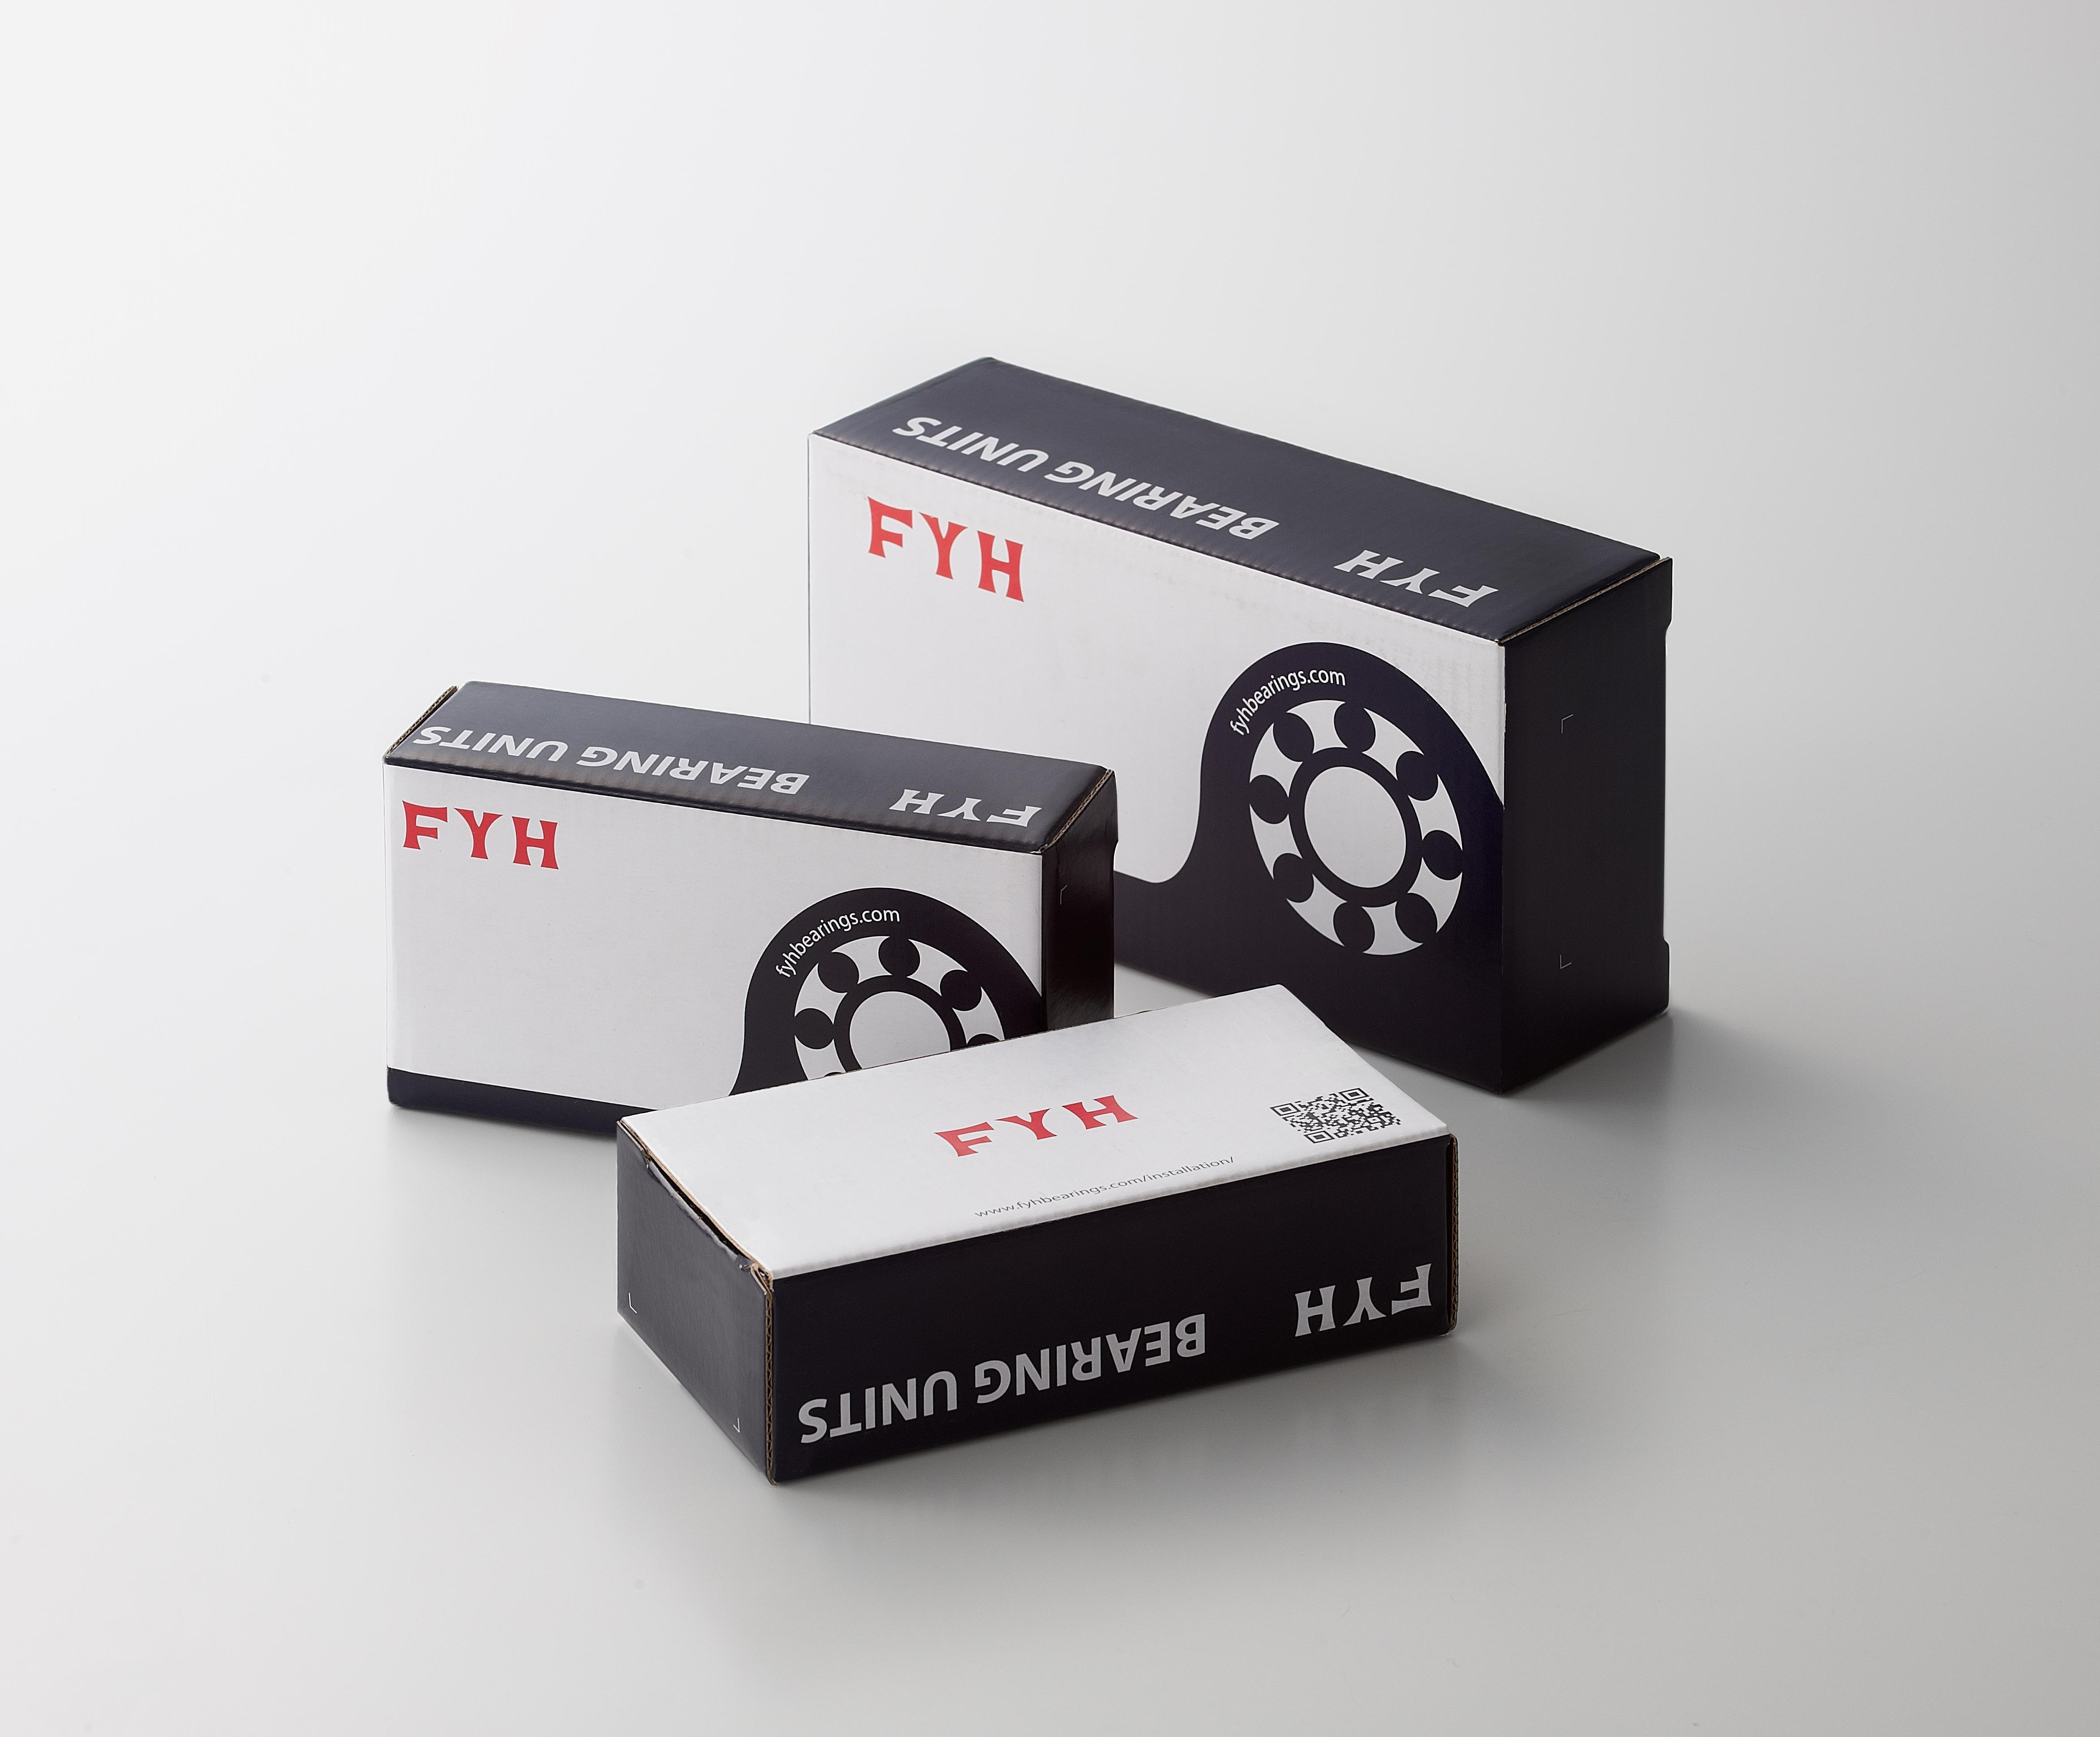 FYH new boxes